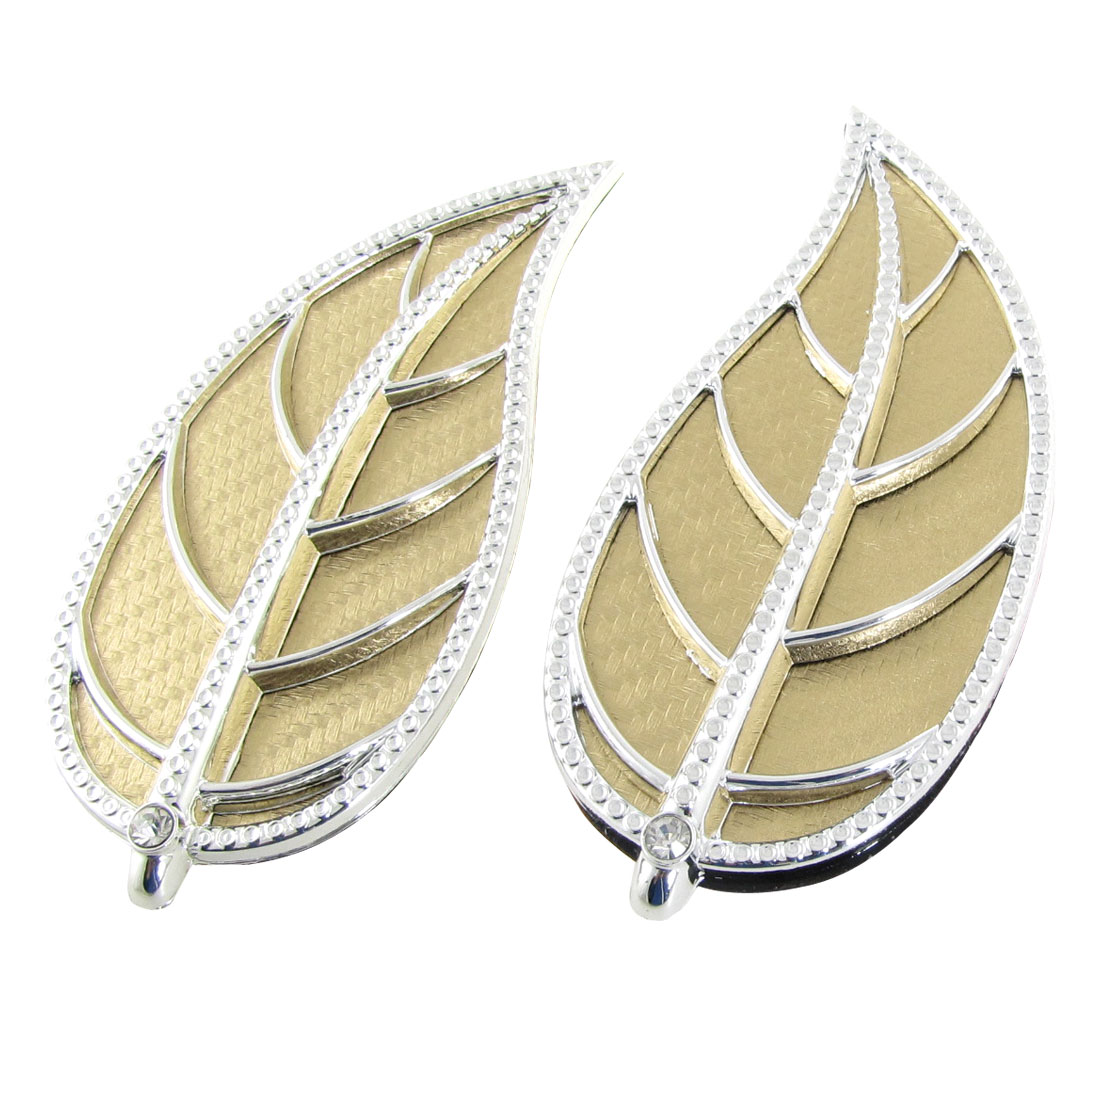 2 Pcs Gold Tone Leaf Shape Air Flow Fender 3D Sticker for Car Decoration